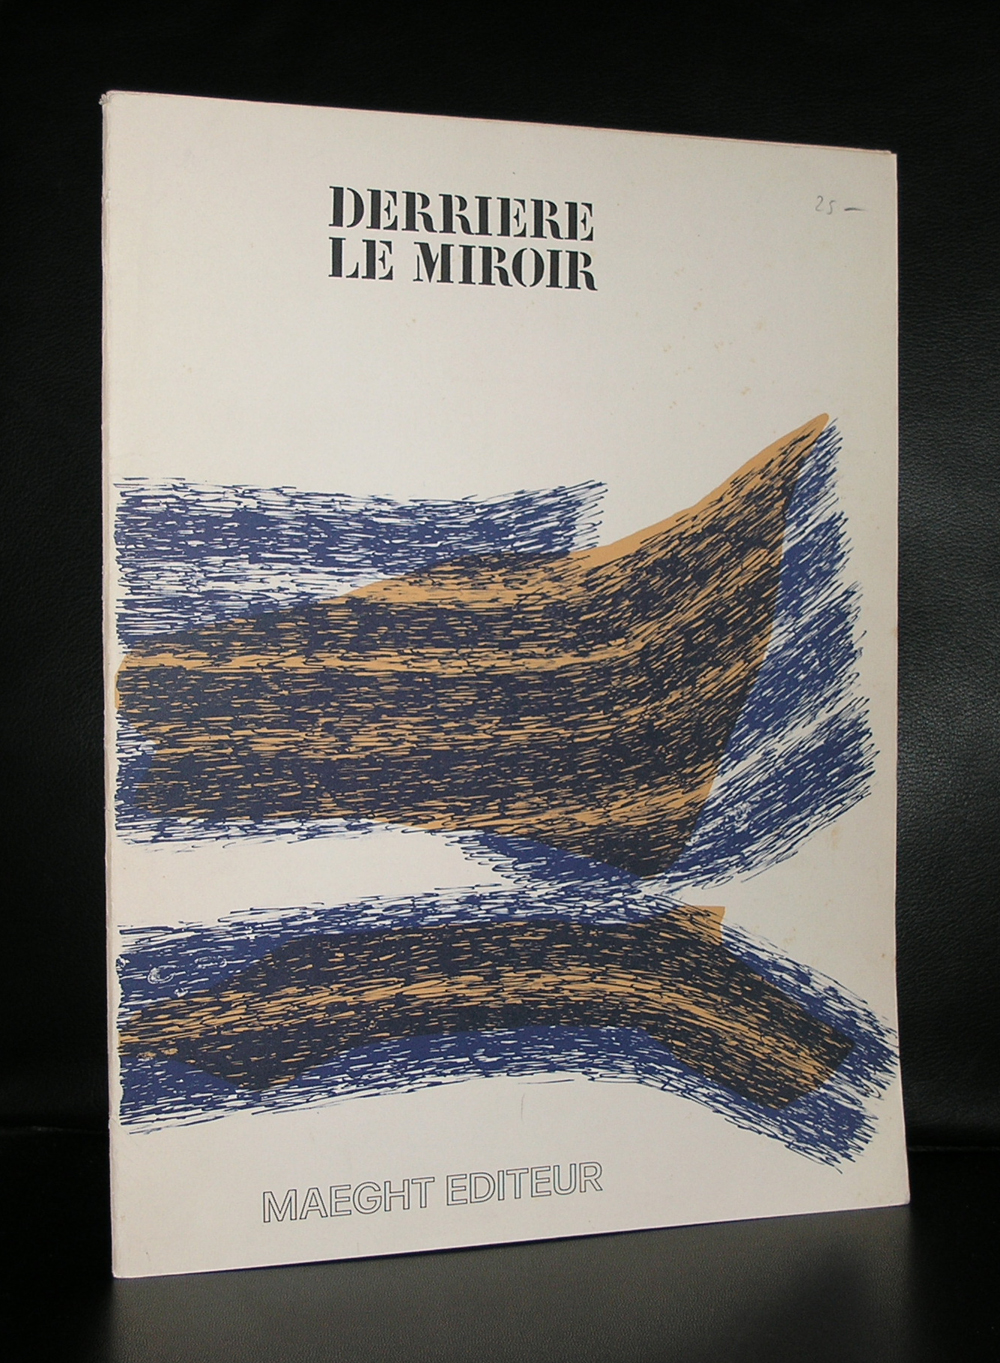 Maeght edition derriere le miroir ftn books for Derriere le miroir